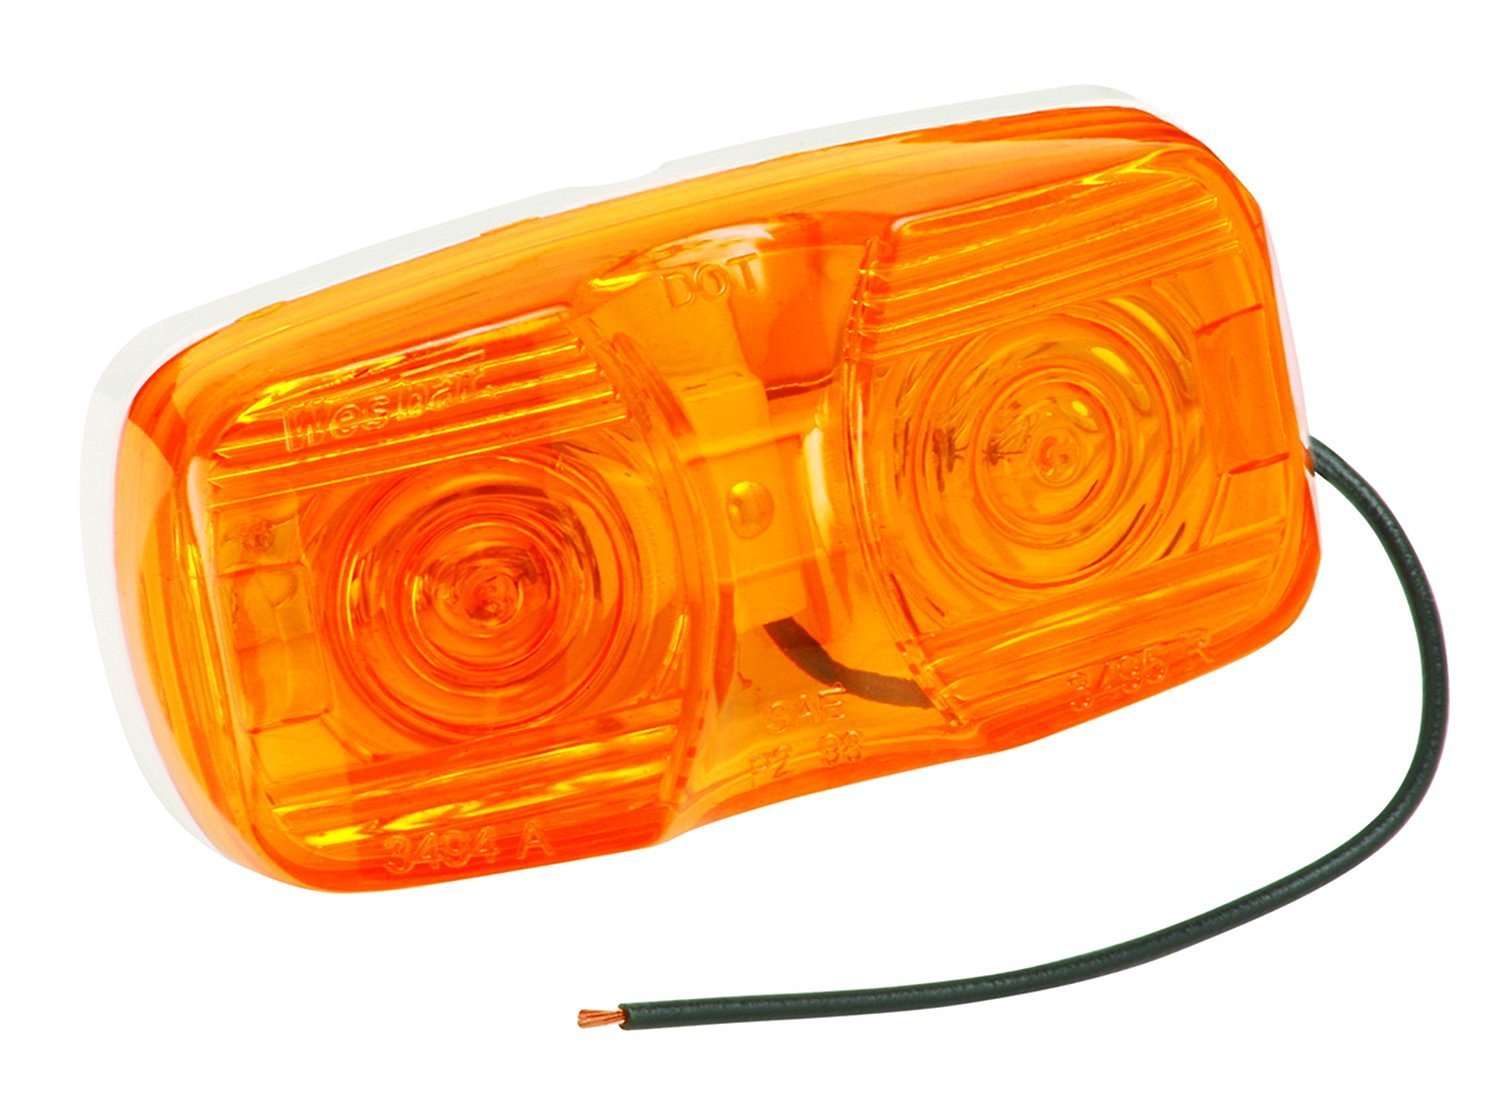 Wesbar 6 Pin Wiring Harness Cheap Trailer Light Find Deals On Line Get Quotations Standard Side Marker Clearance With Dual Bulbs Amber